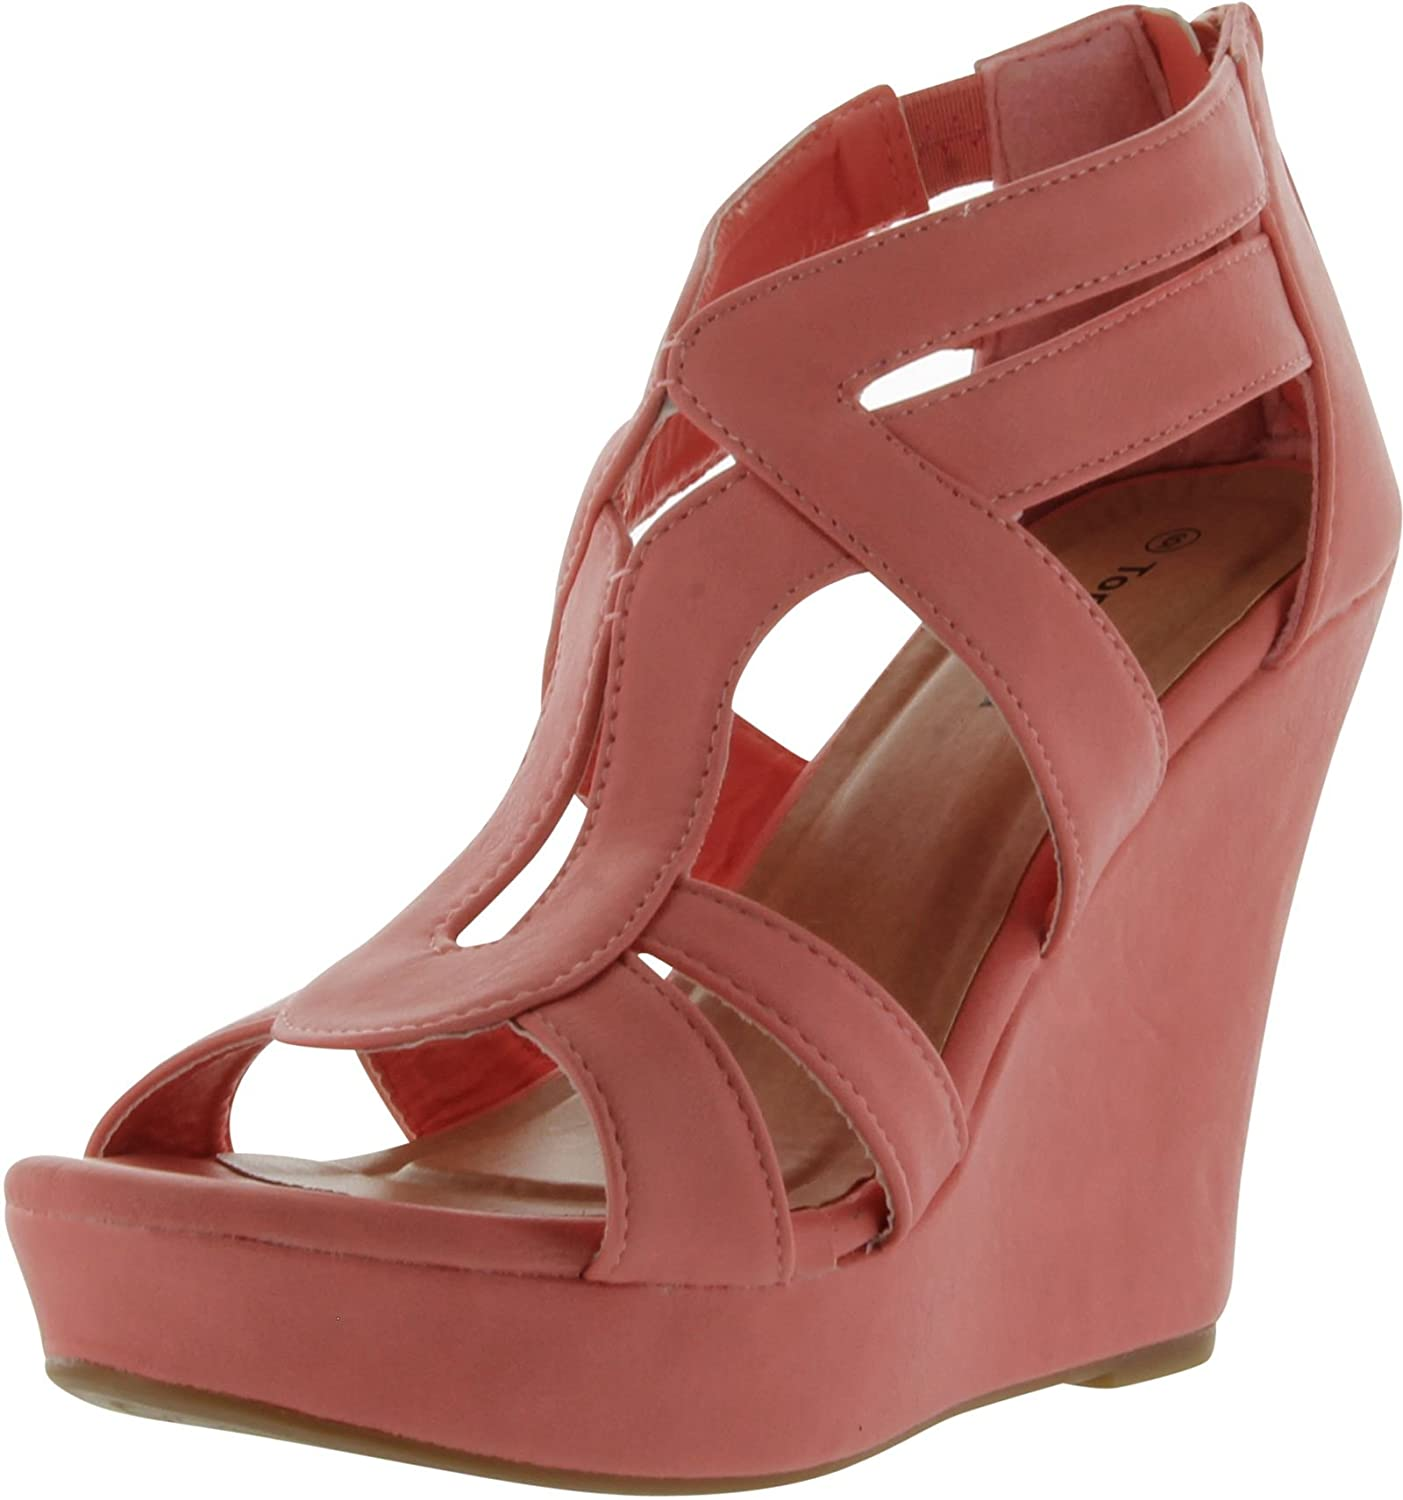 Lindy 03 Strappy Open Toe Platform Wedge B00DR0EO6G 9 B(M) US Coral Linen